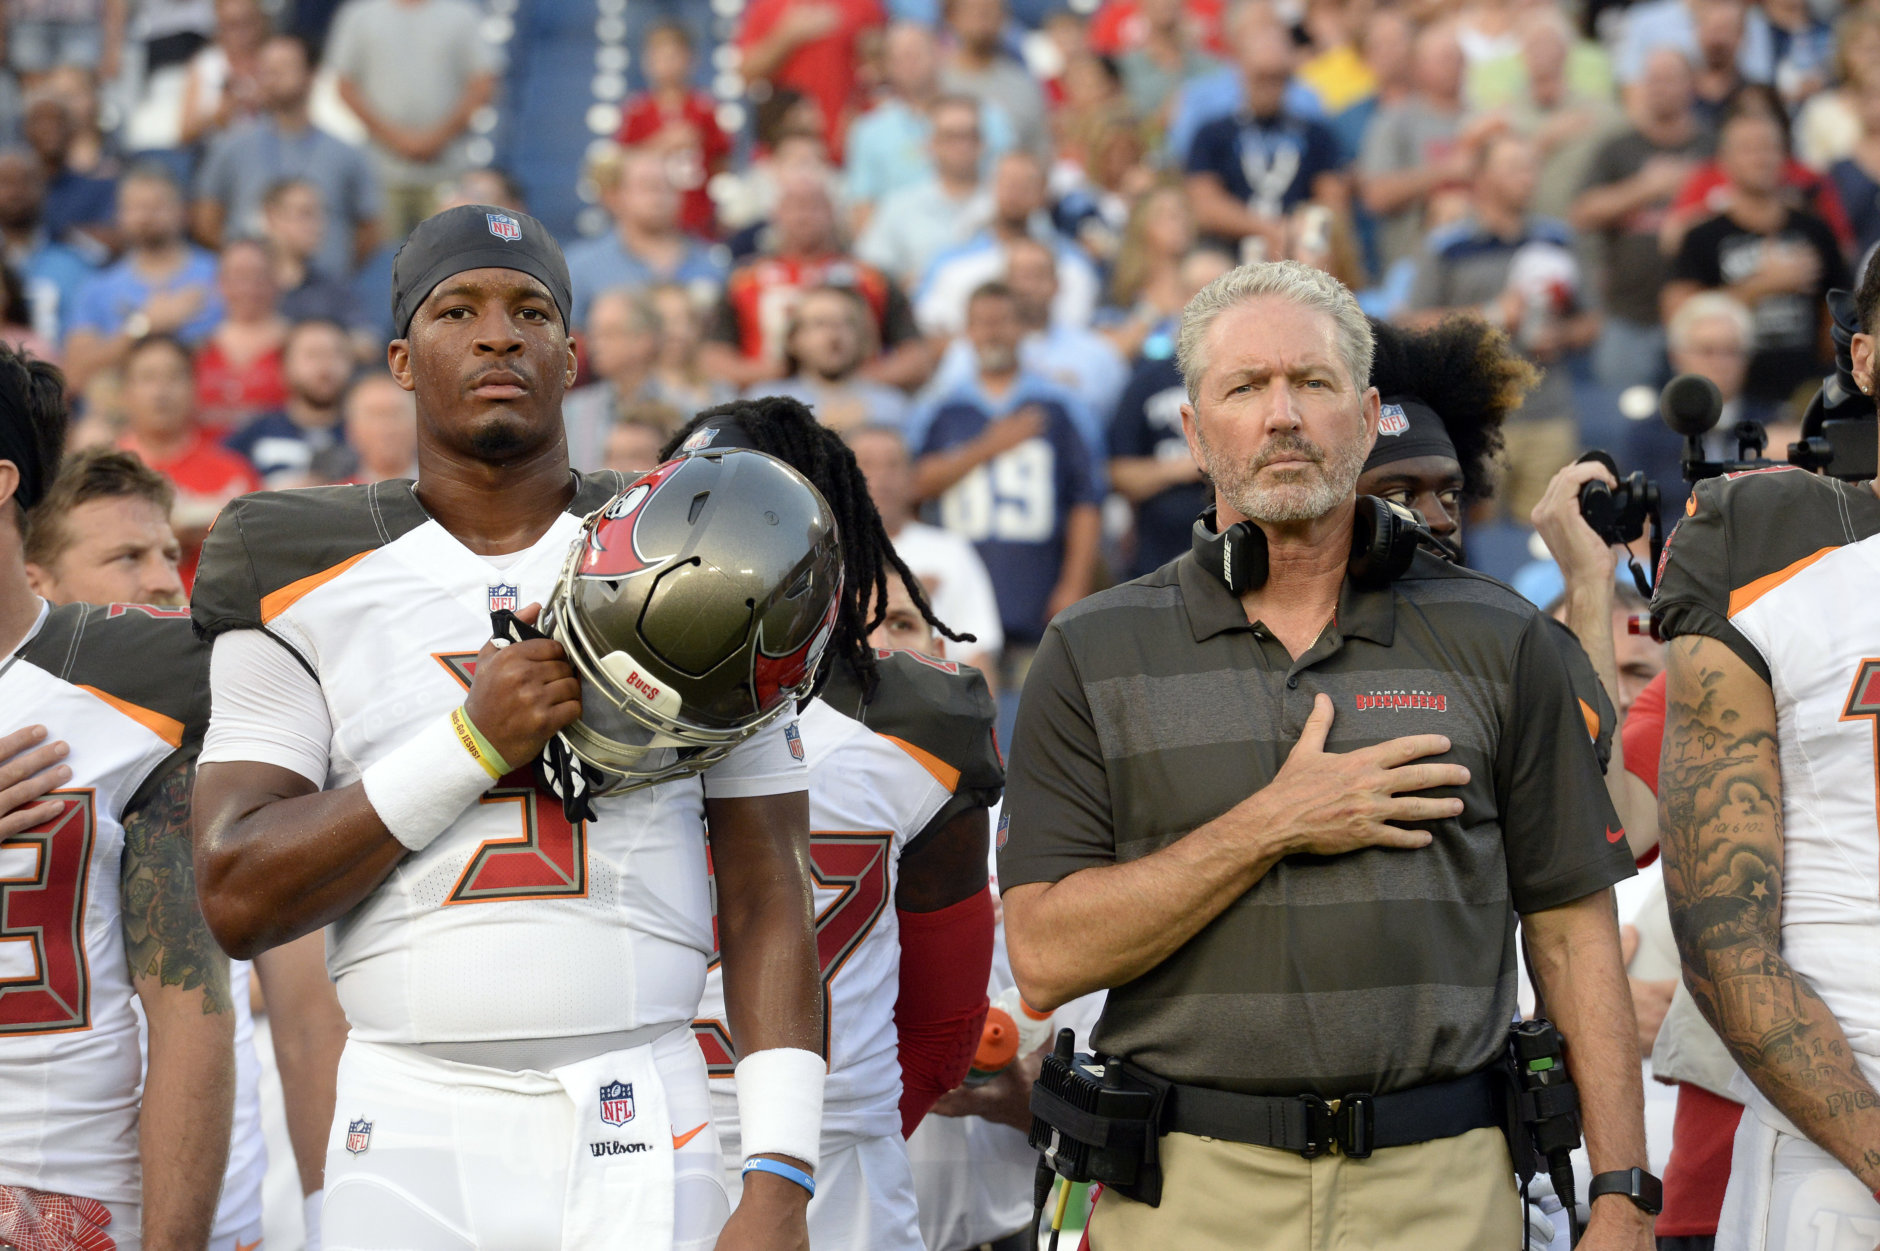 Tampa Bay Buccaneers head coach Dirk Koetter and quarterback Jameis Winston (3) stand for the national anthem before a preseason NFL football game against the Tennessee Titans Saturday, Aug. 18, 2018, in Nashville, Tenn. (AP Photo/Mark Zaleski))